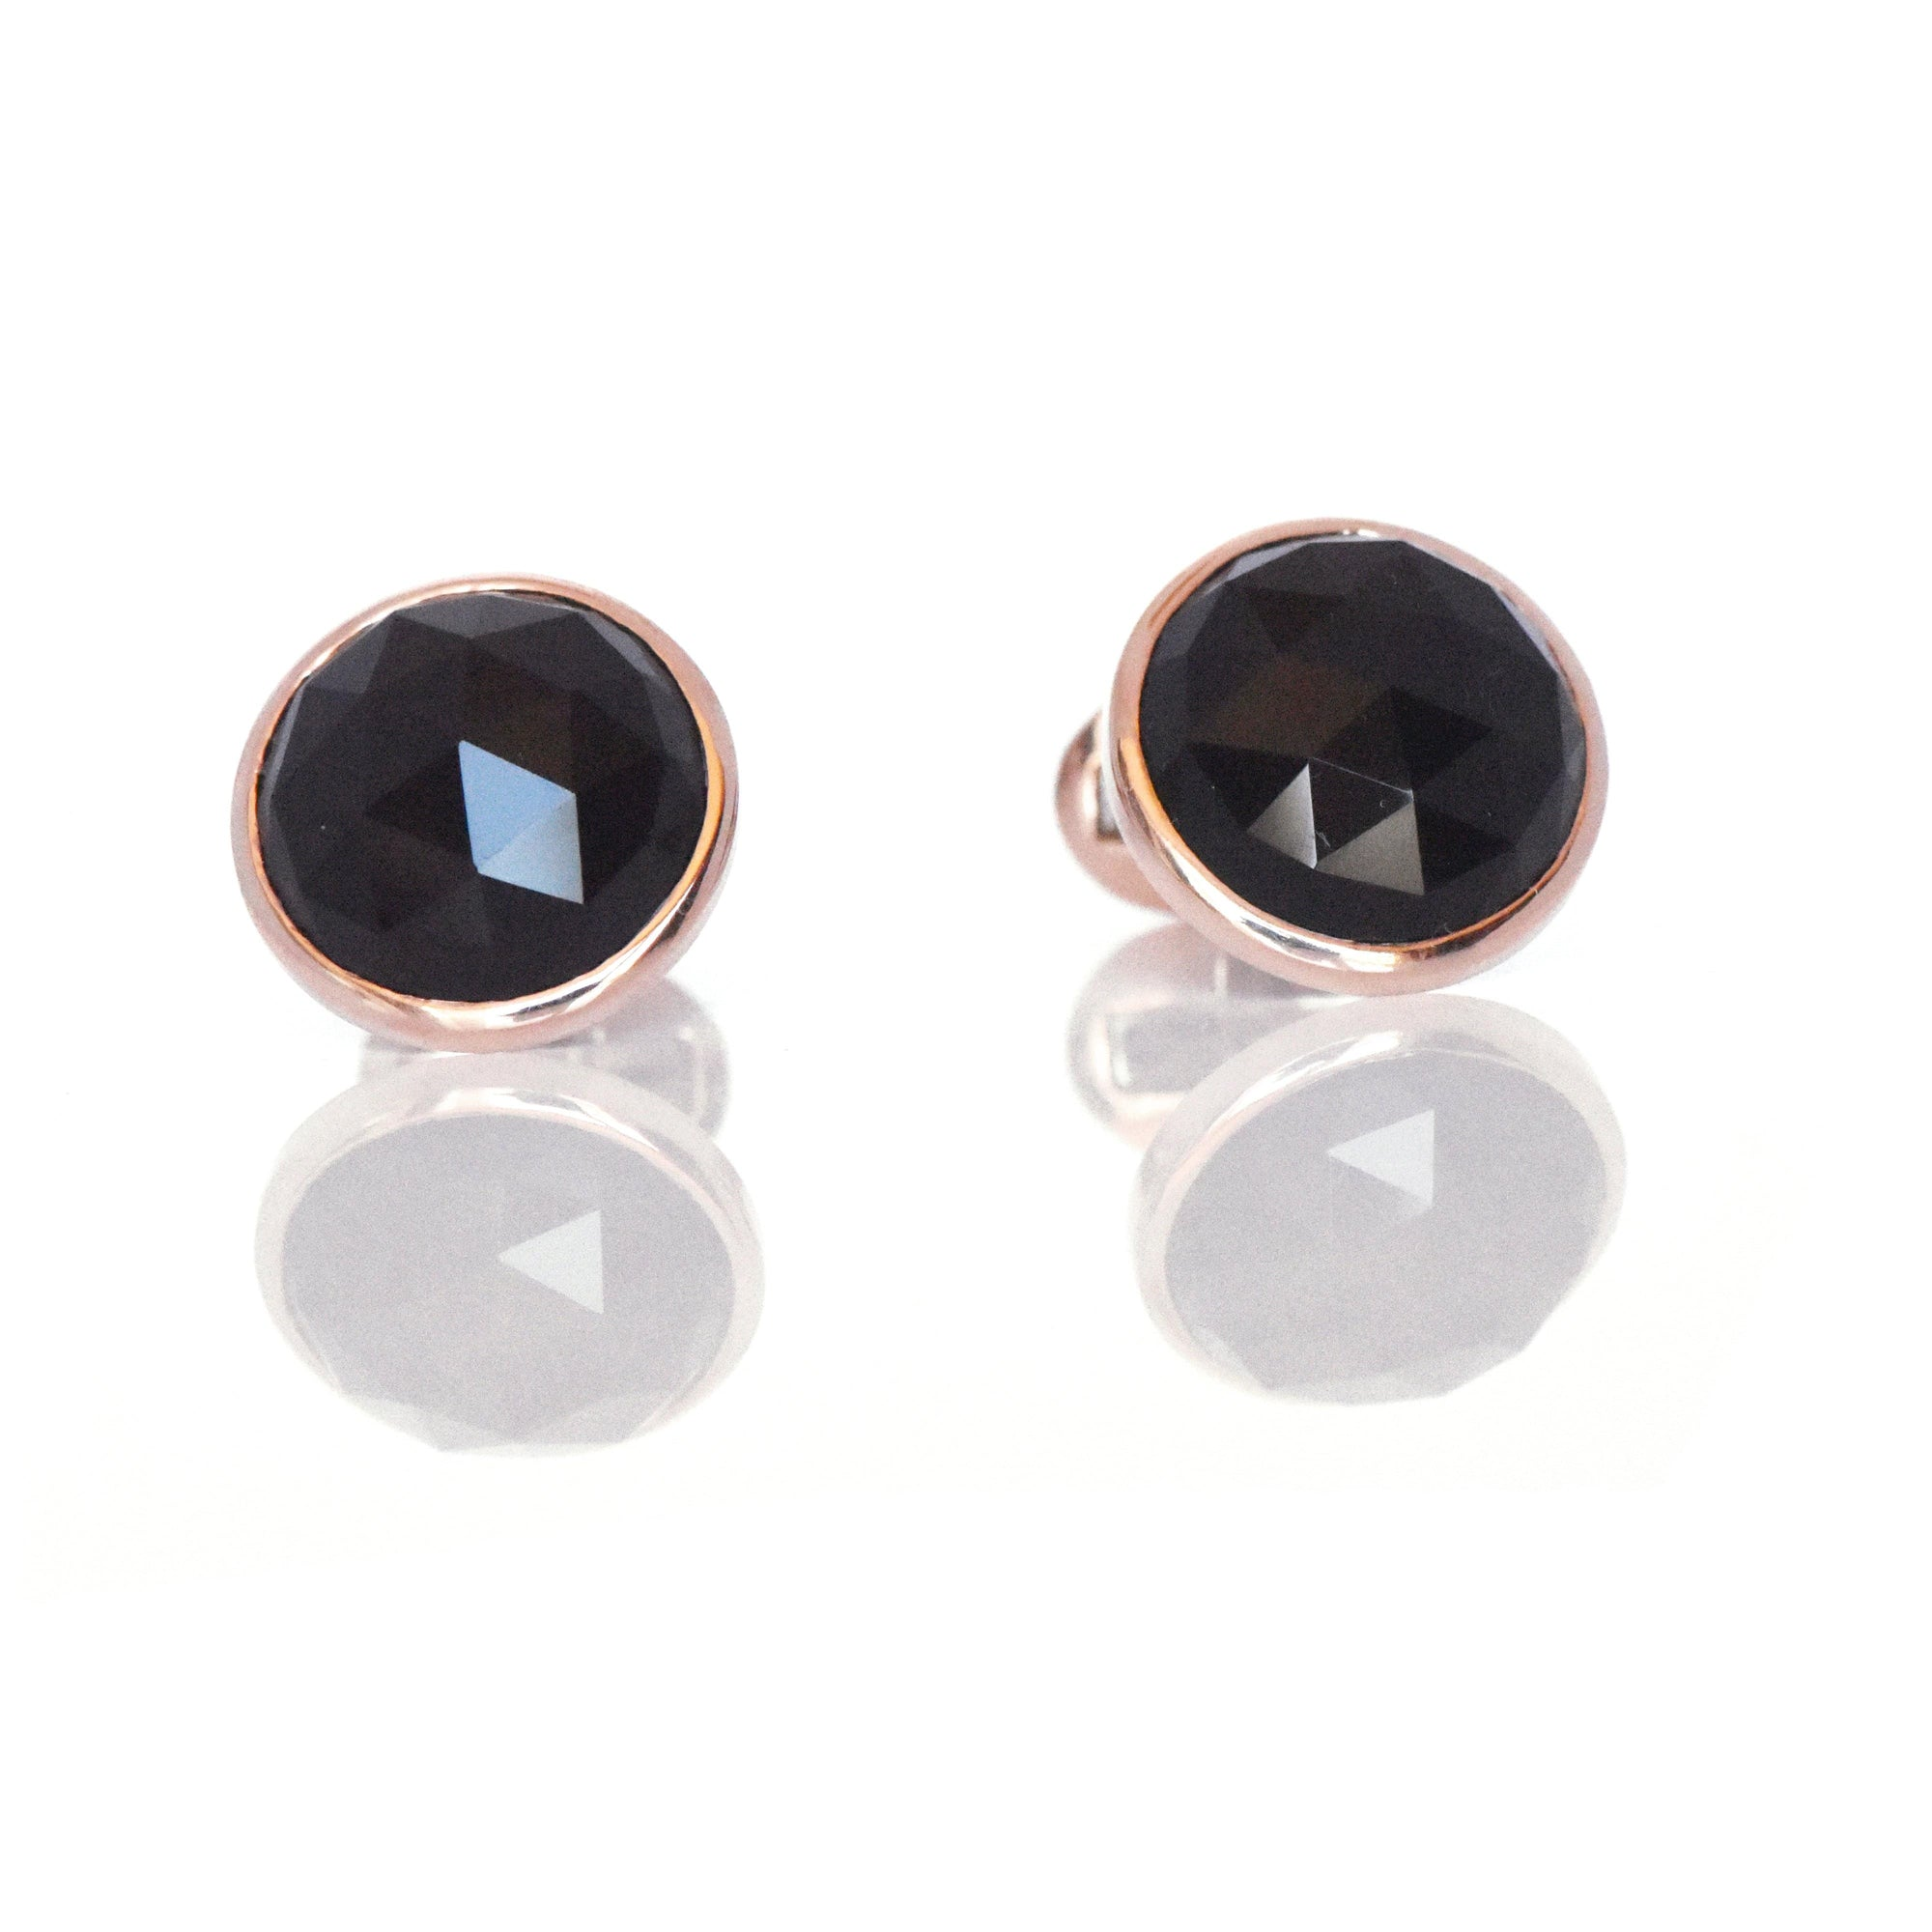 18k Amber Hue Solid Gold & Onyx Cufflinks